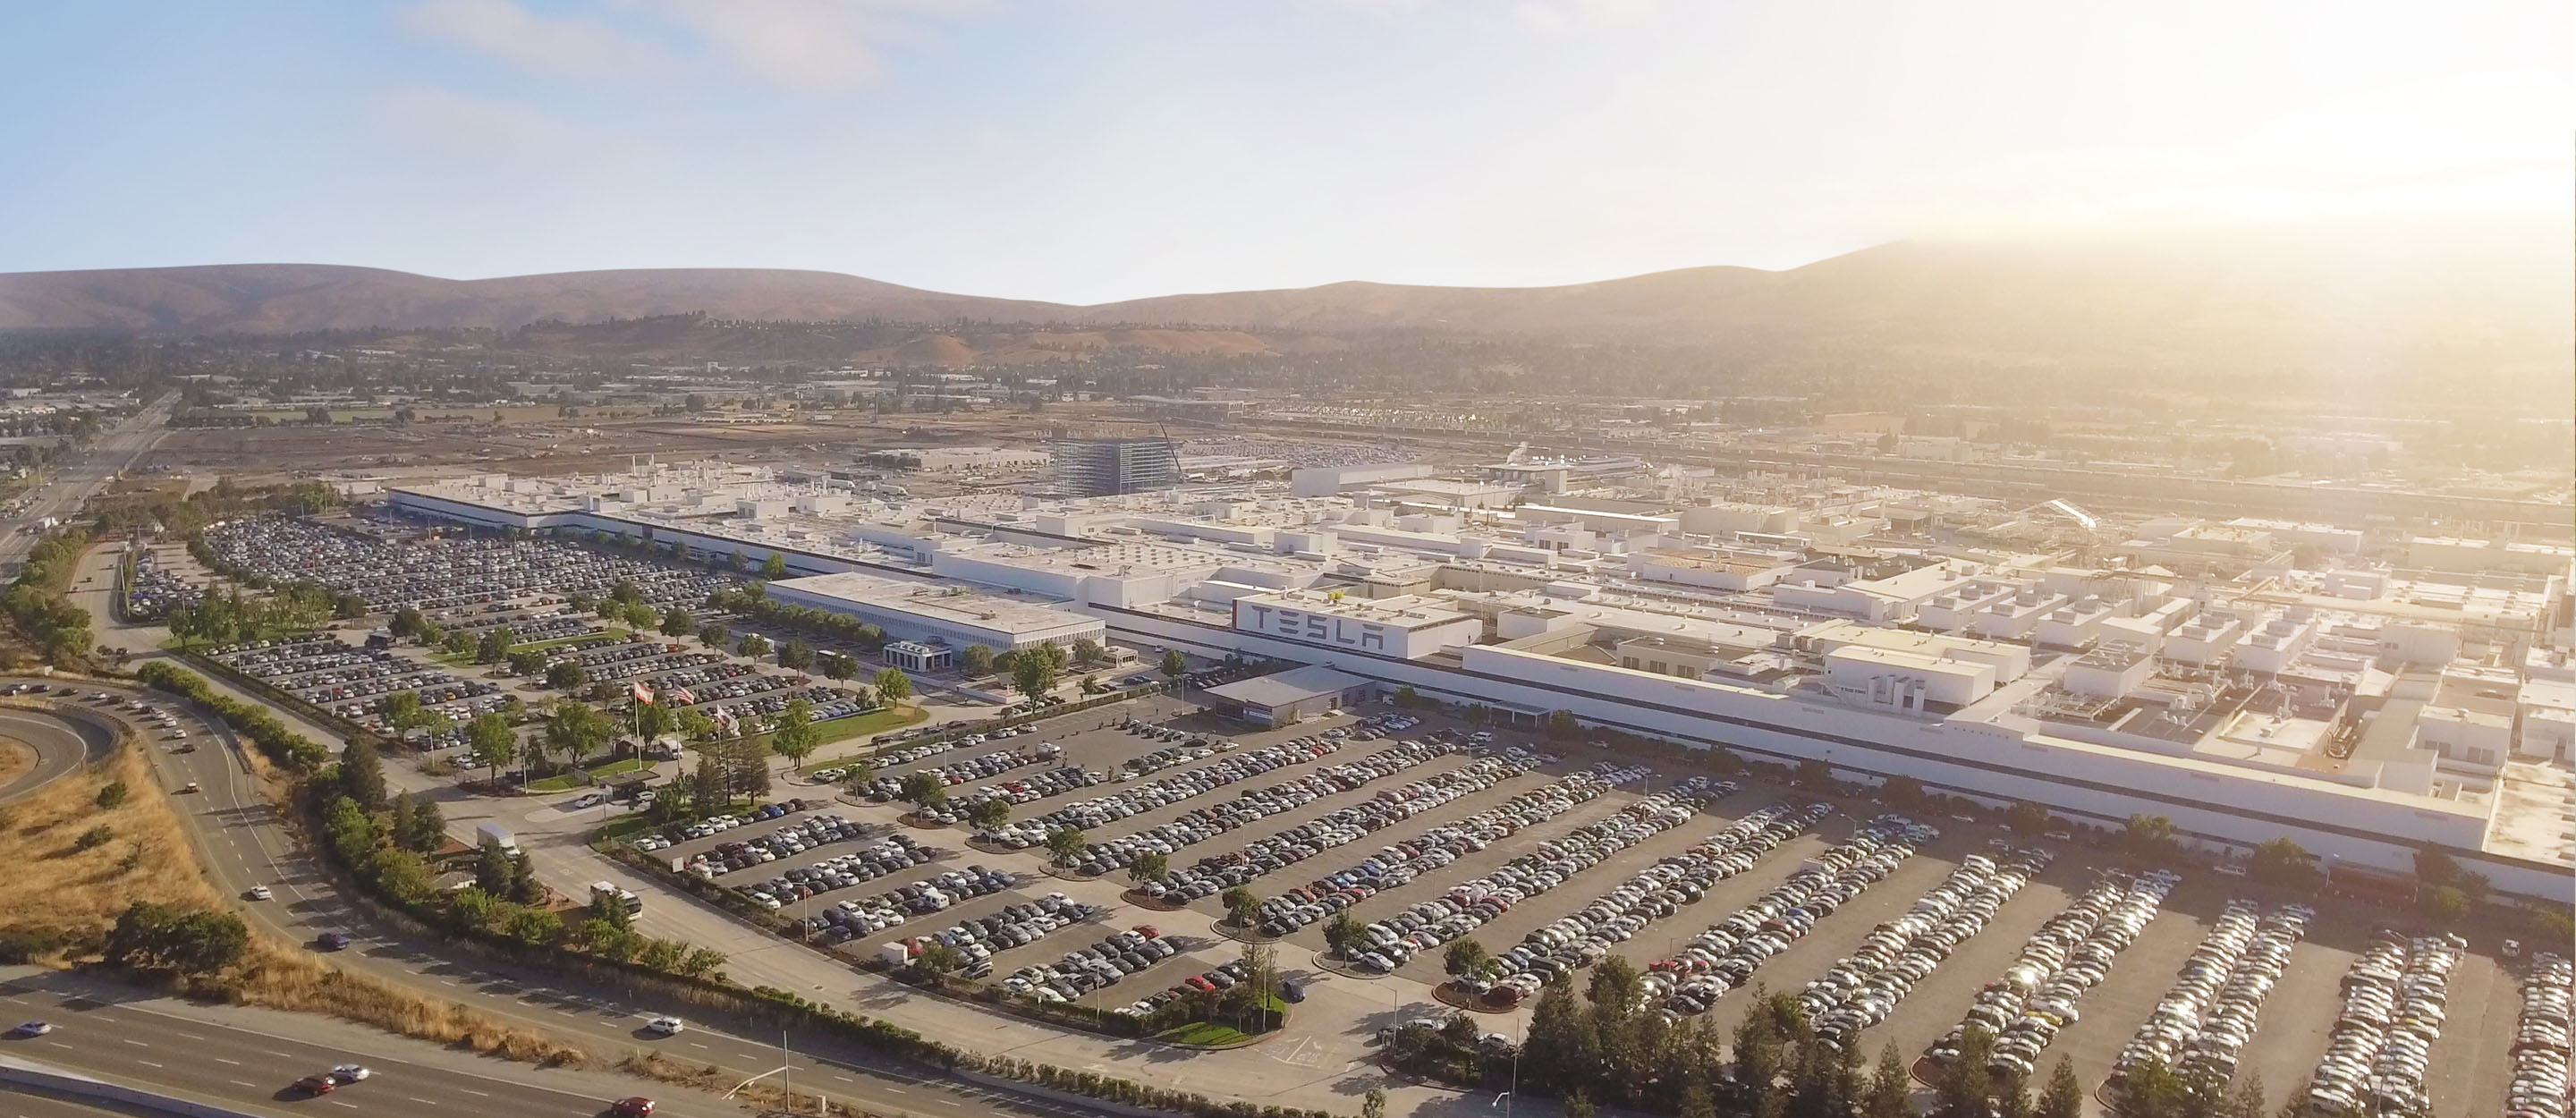 Performance Management at Tesla: What we know.